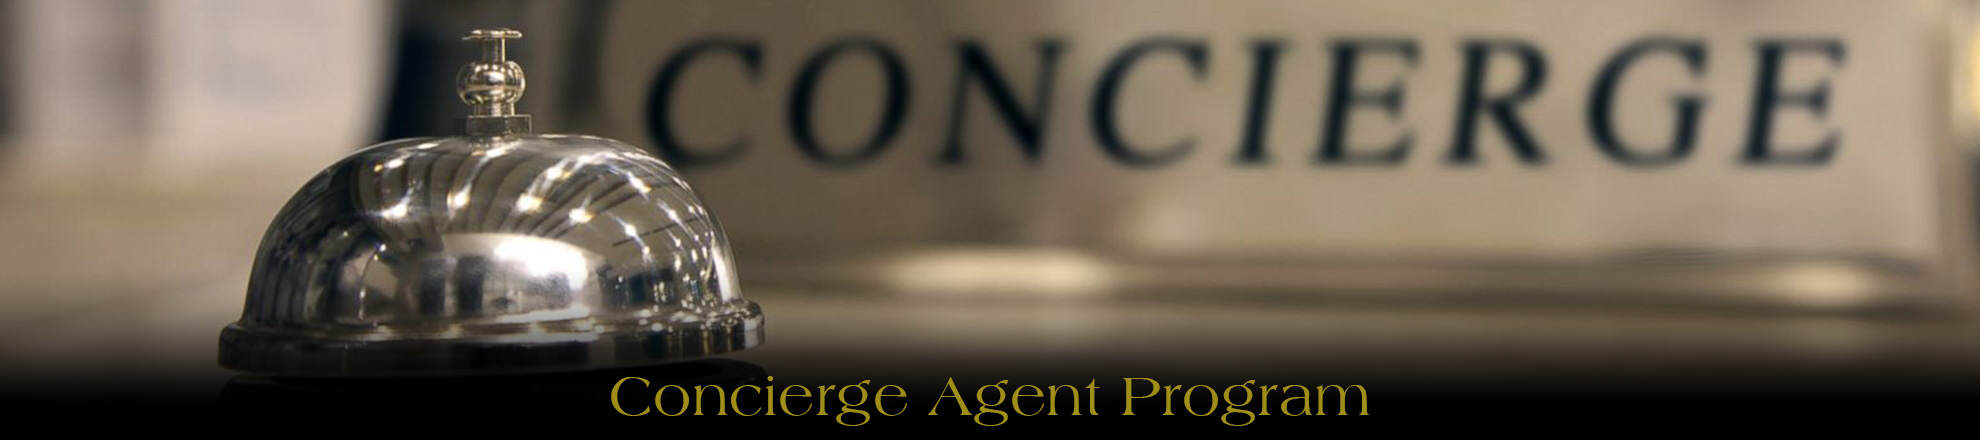 concierge agent signup